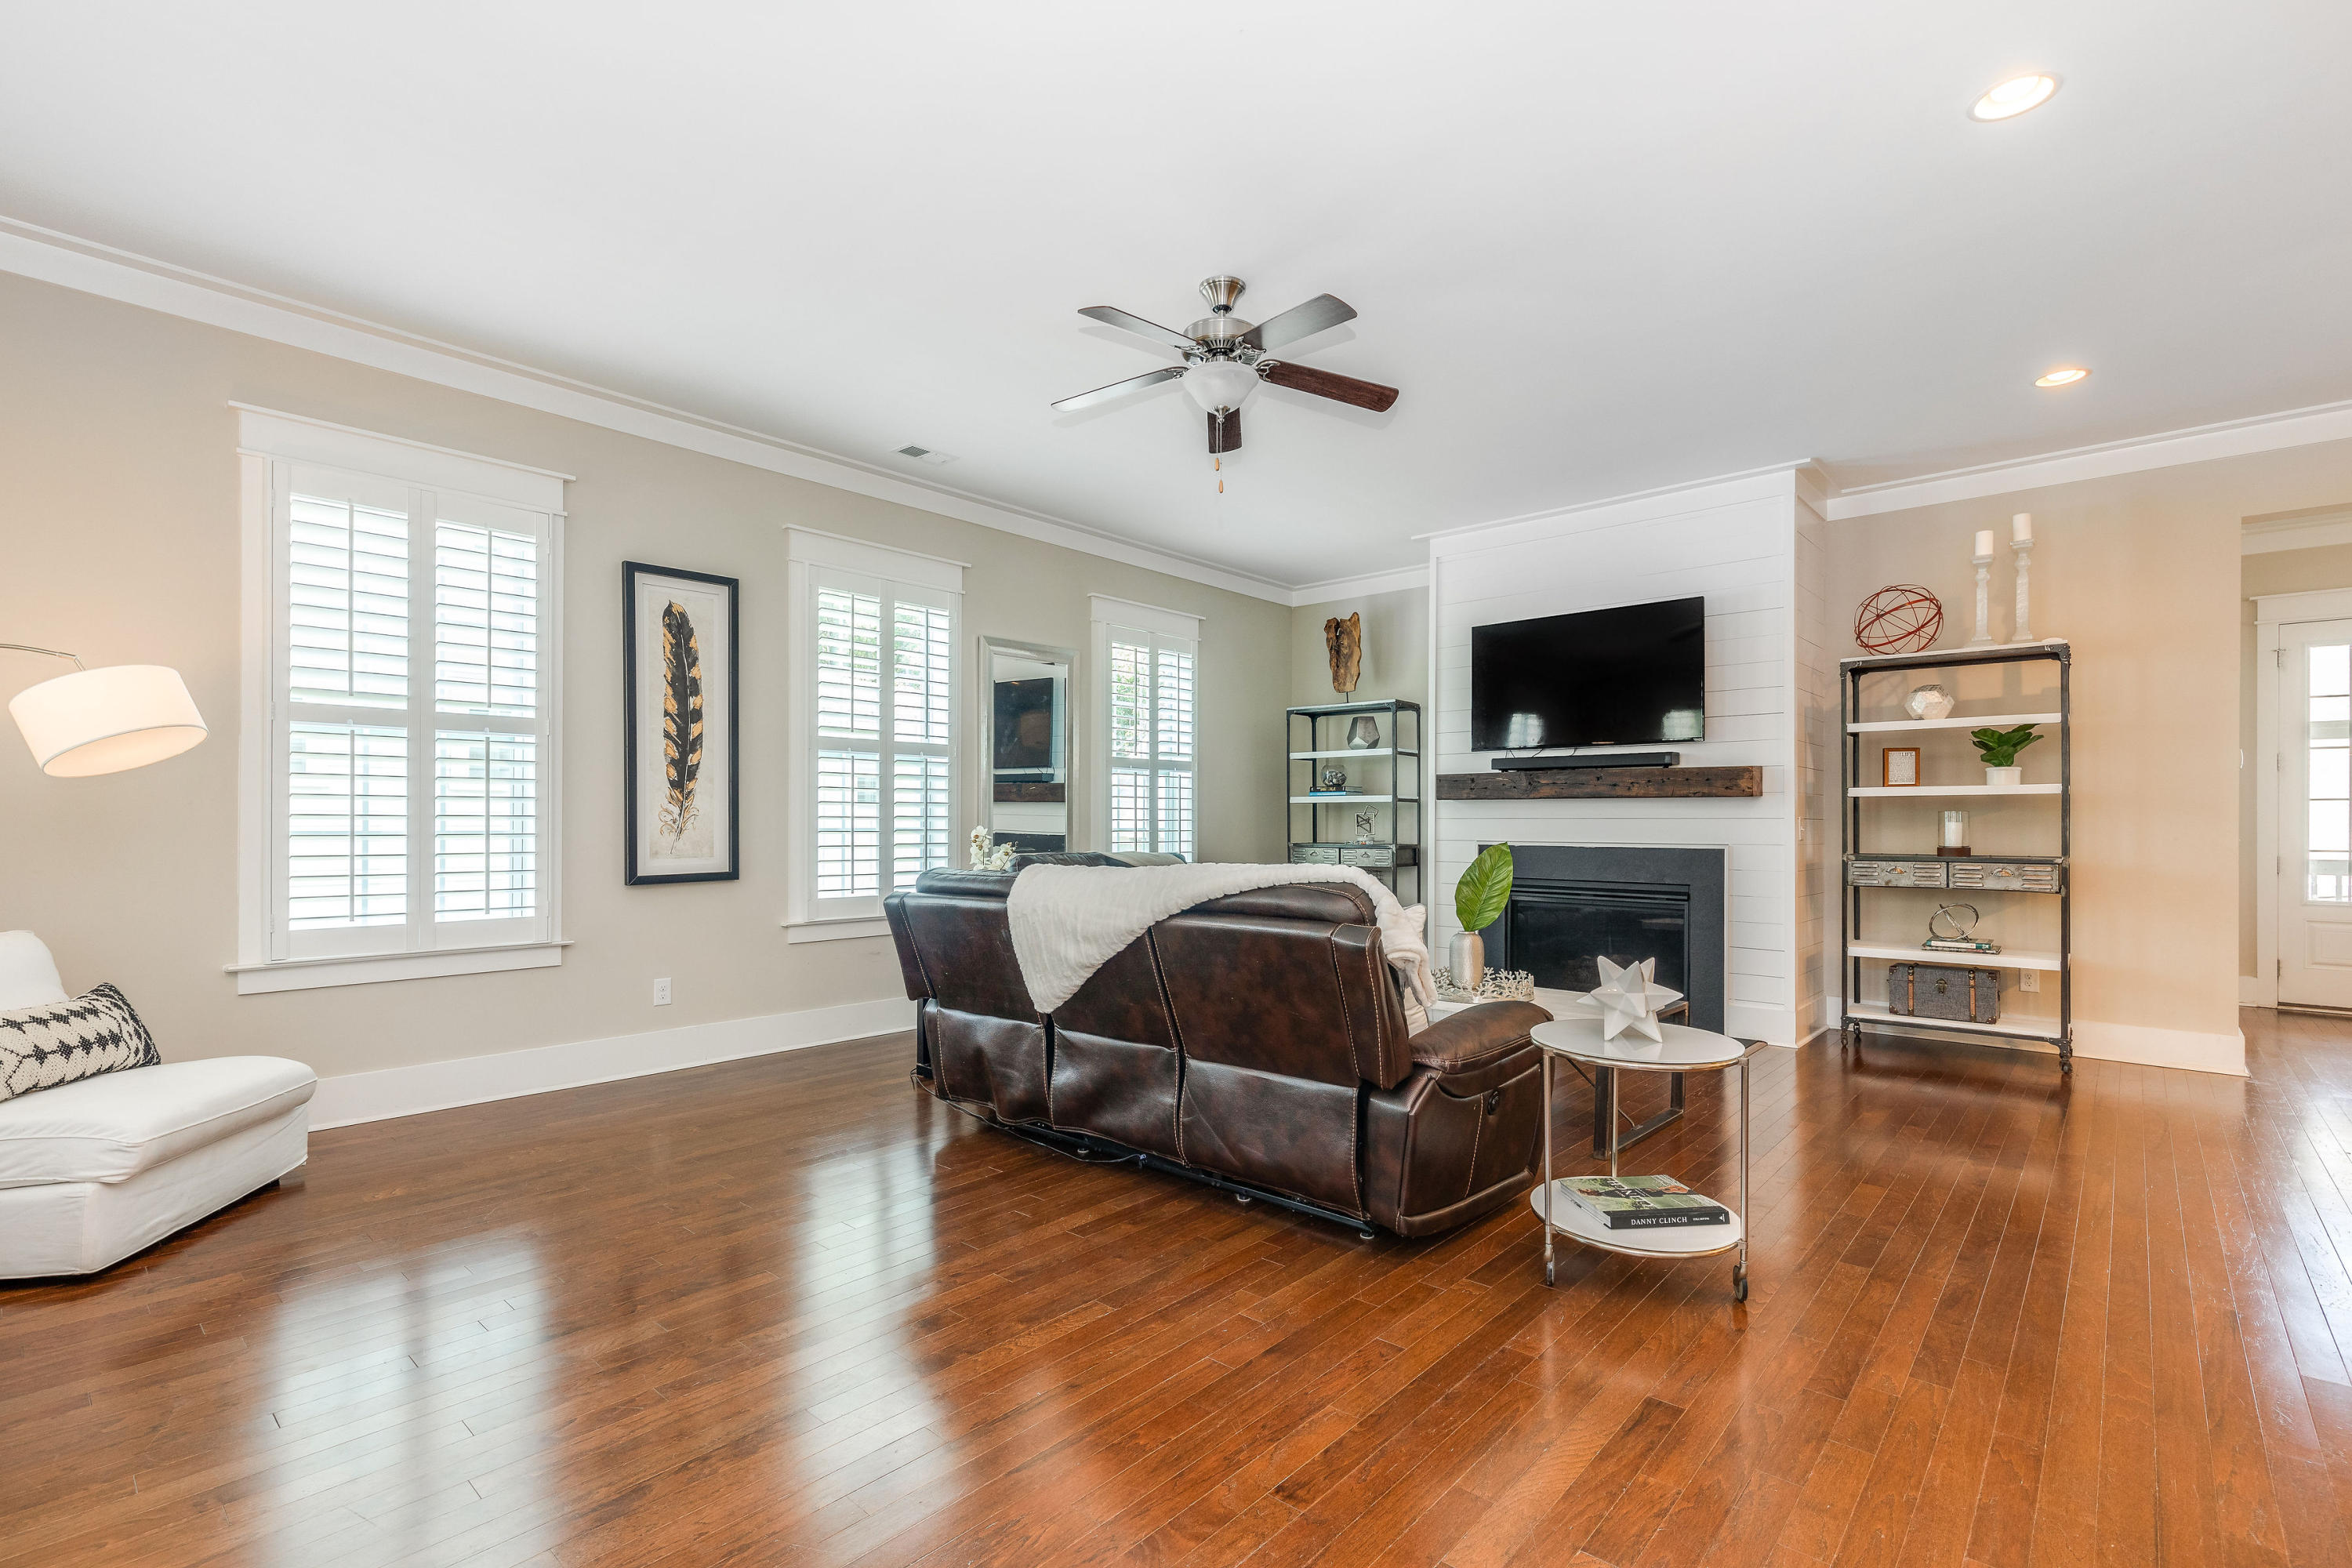 Rivertowne On The Wando Homes For Sale - 2765 Rivertowne, Mount Pleasant, SC - 13